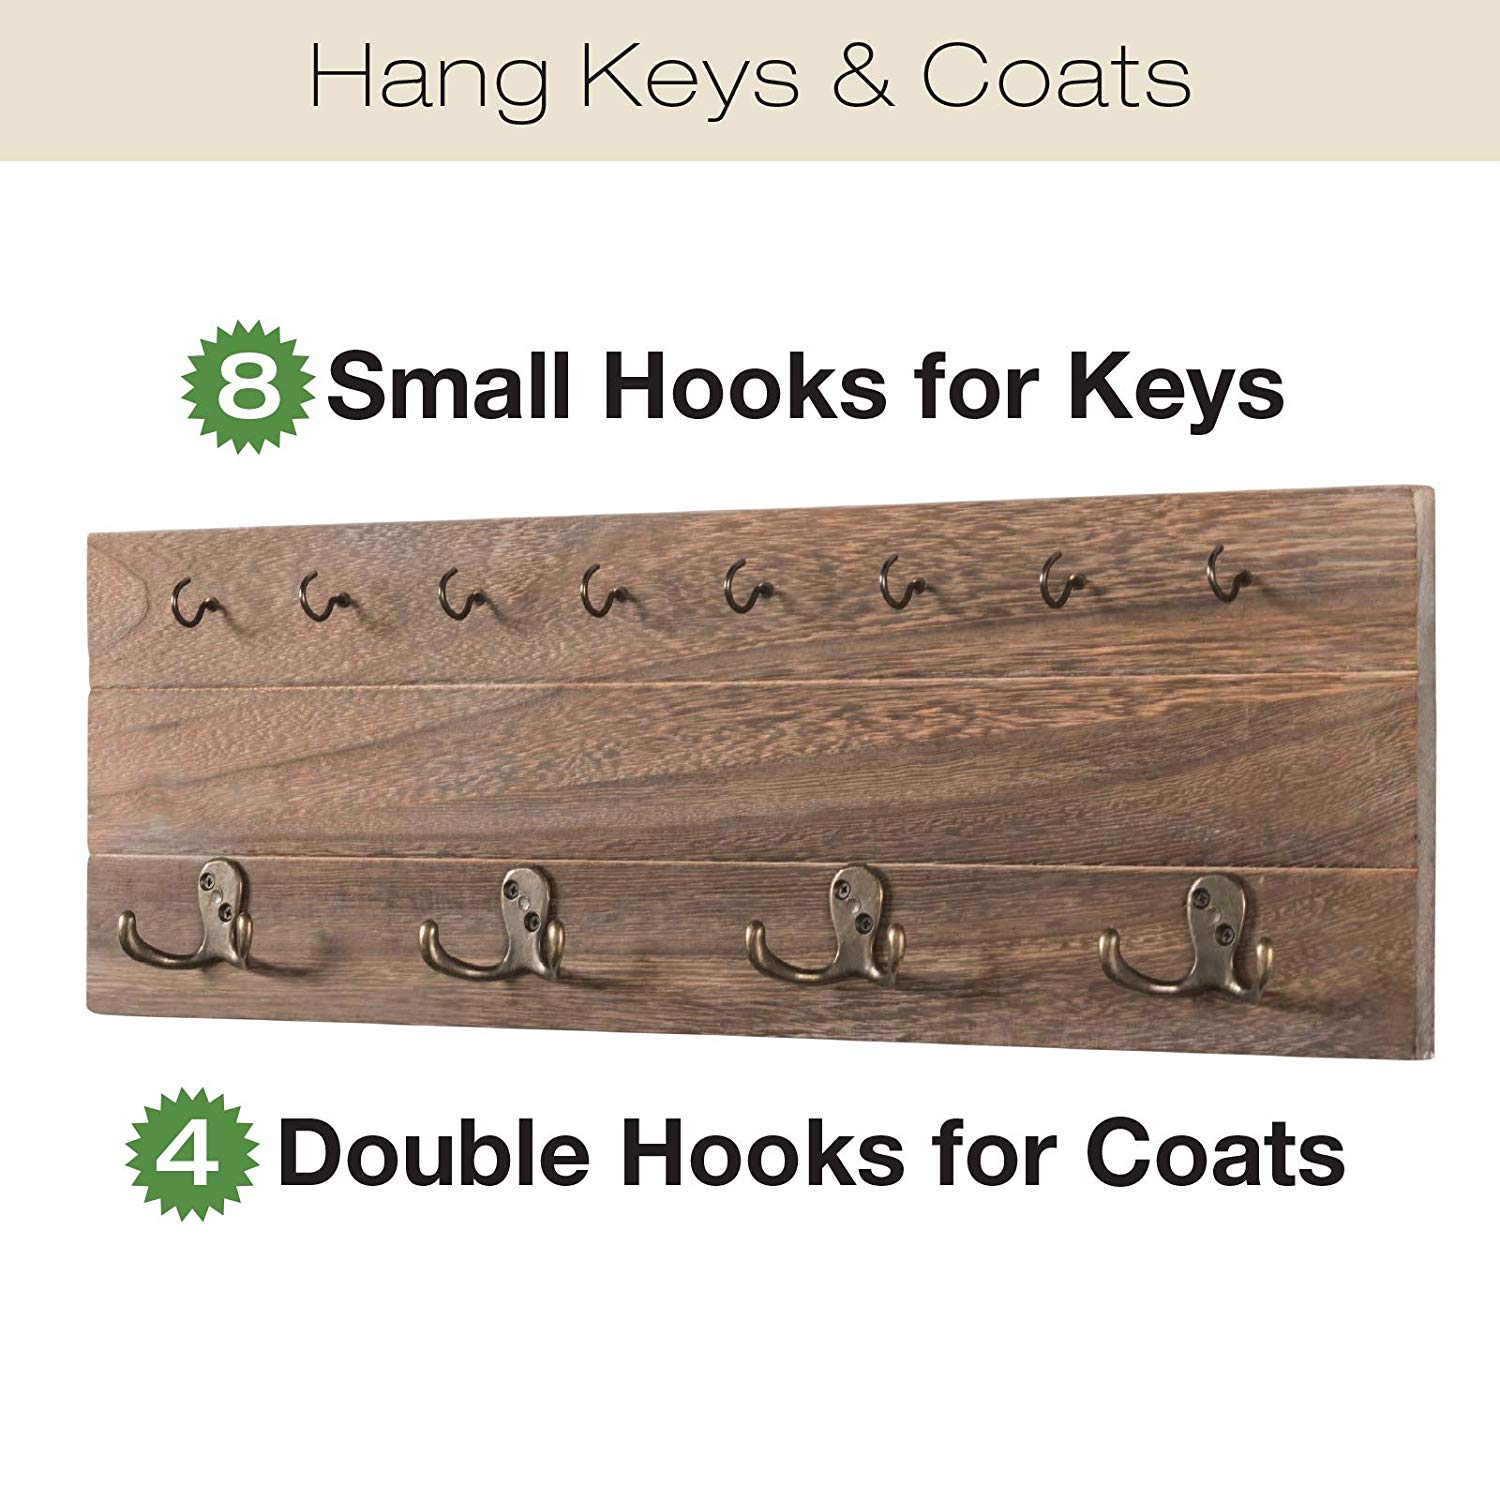 Wall Mounted Hanging with hooks, Coat rack, hat organizer, key holder for Entryway, Mudroom and more